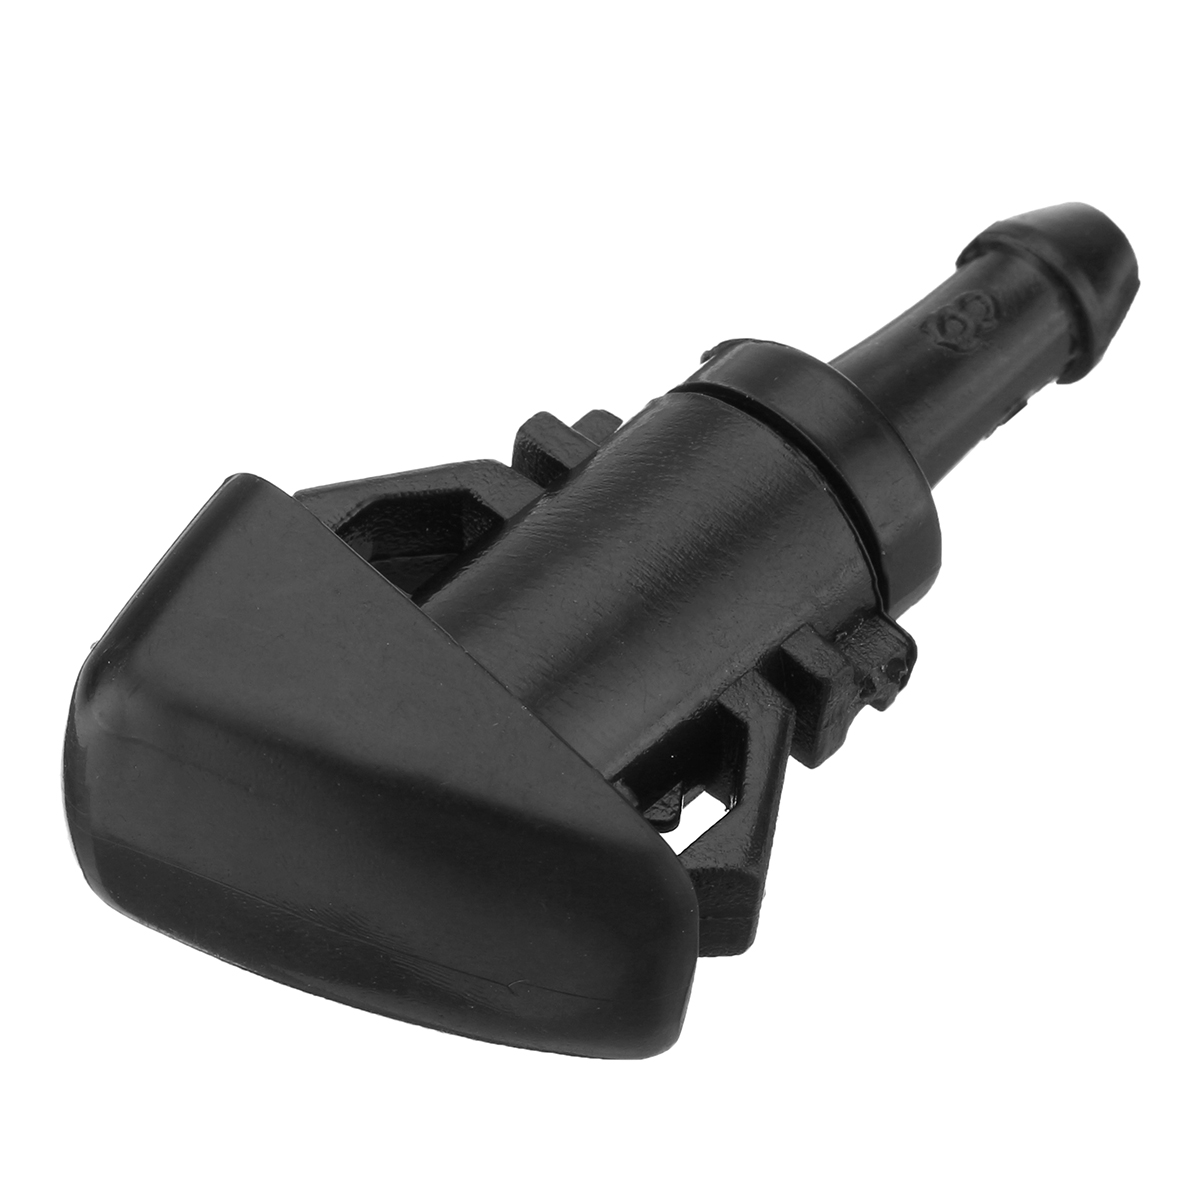 Windshield Washer Wiper Water Spray Nozzle For Chrysler 300 Dodge Ram Charger